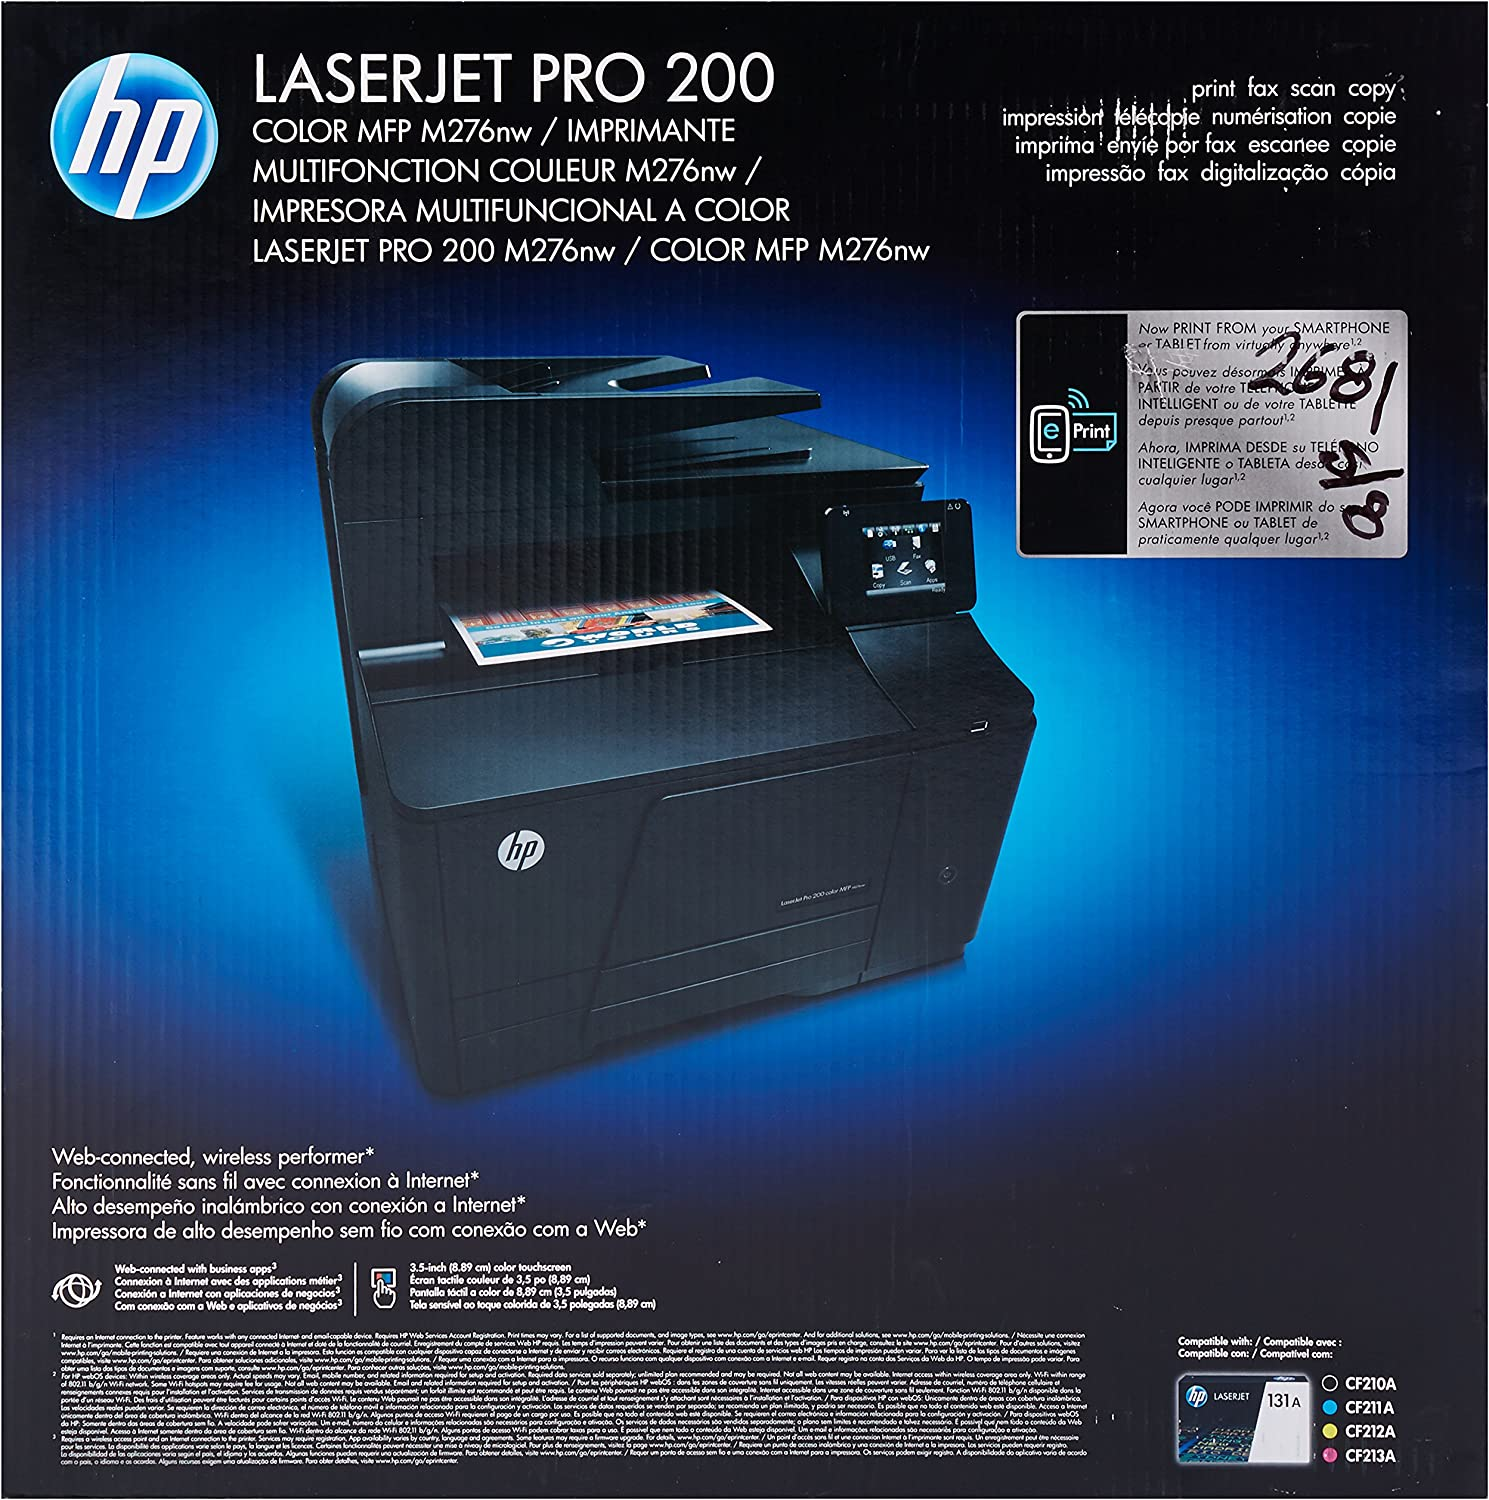 HP LaserJet Pro 200 M276nw All-in-One Color Printer (Old Version)